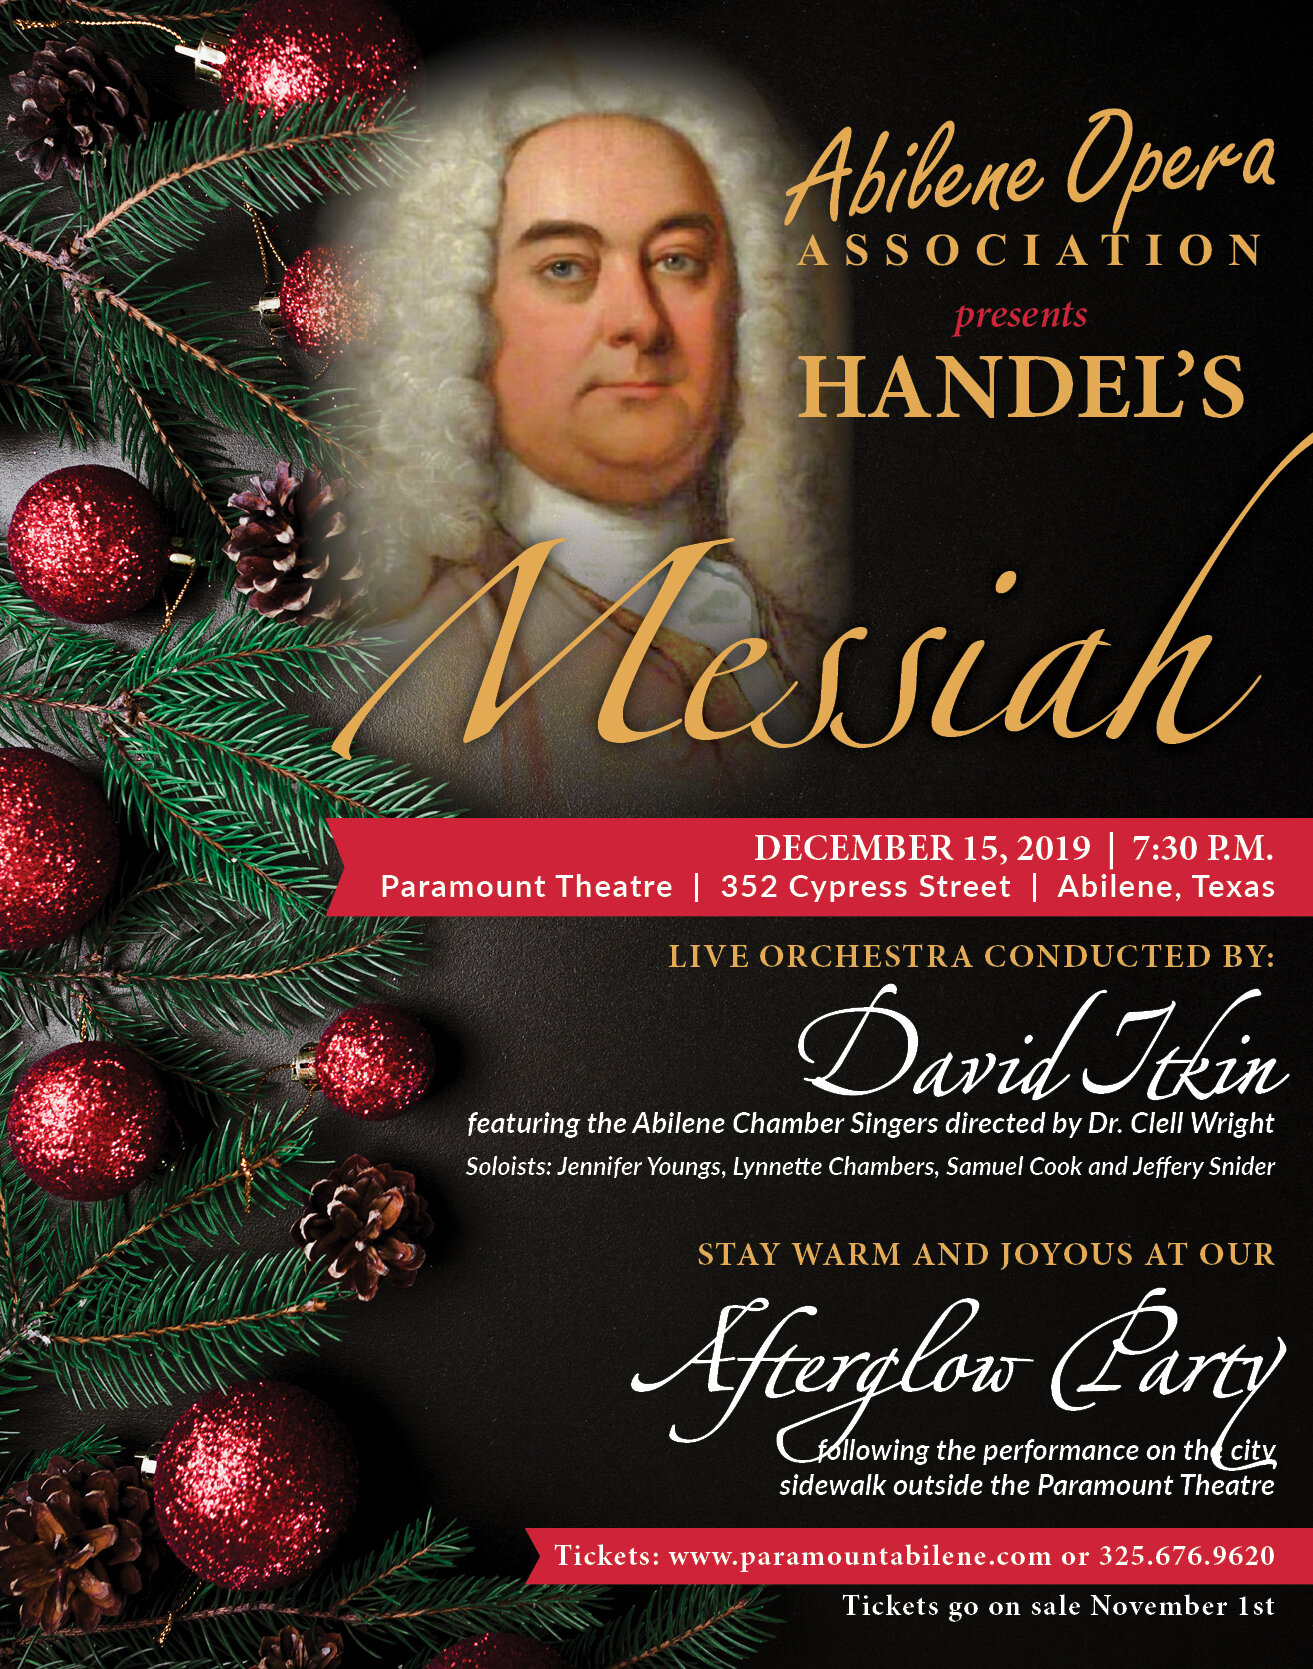 Handles Messiah Christmas Day 2020 ABILENE OPERA ASSOCIATION PRESENTS  MESSIAH — The Historic